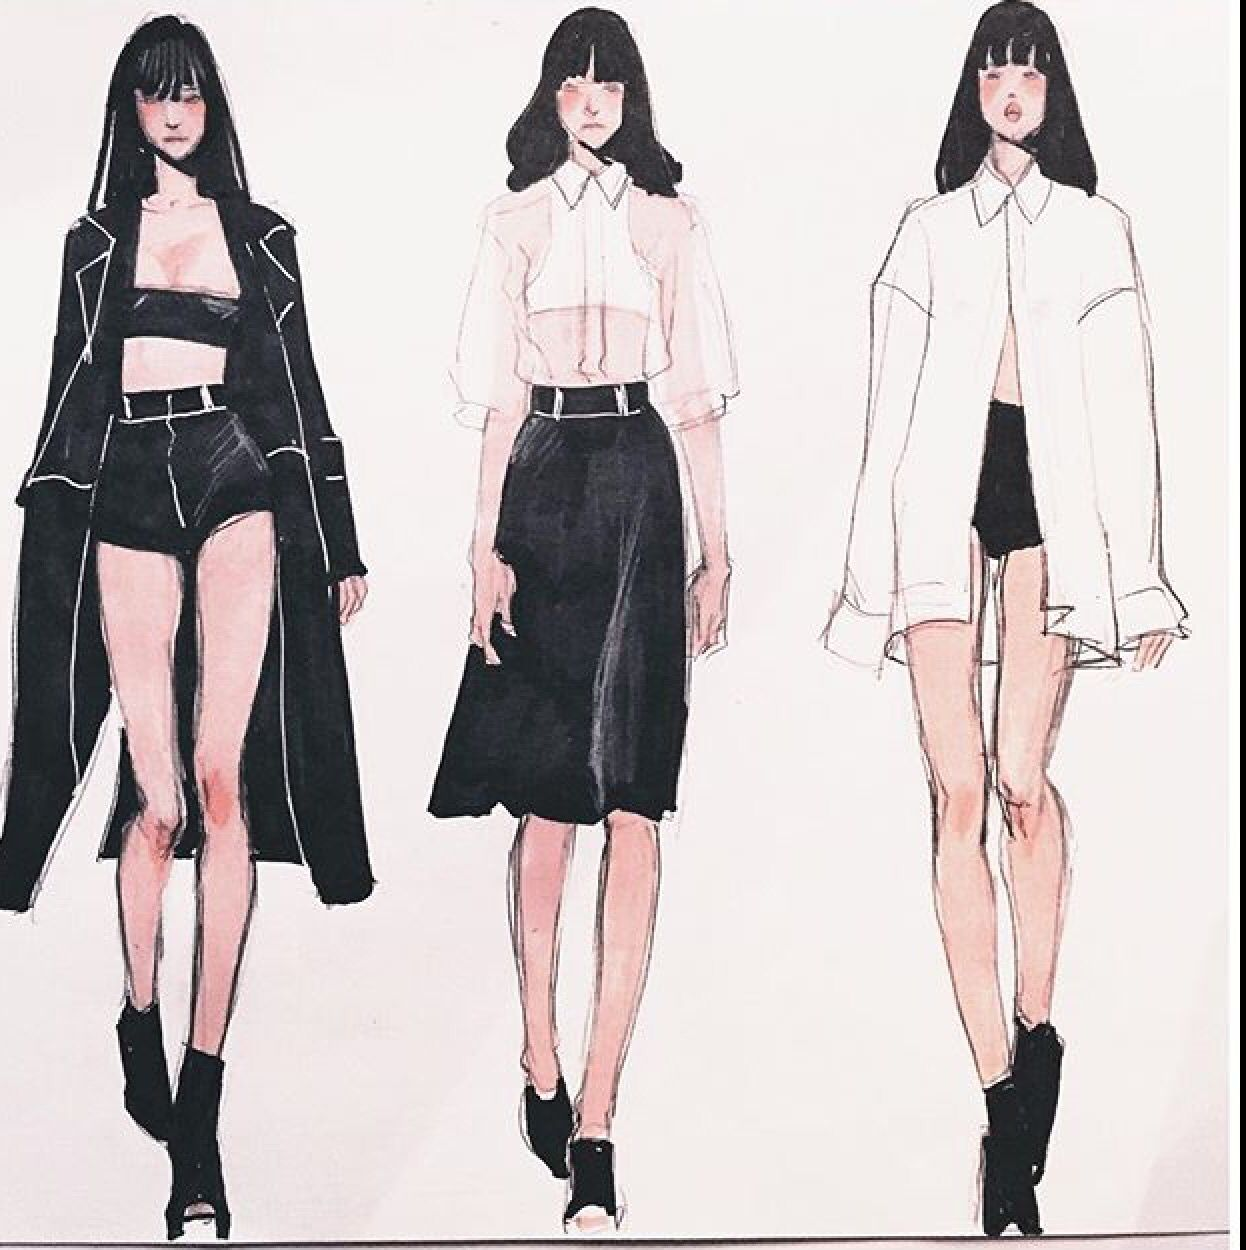 Line Art Fashion Design : Fashion illustration inspire pinterest